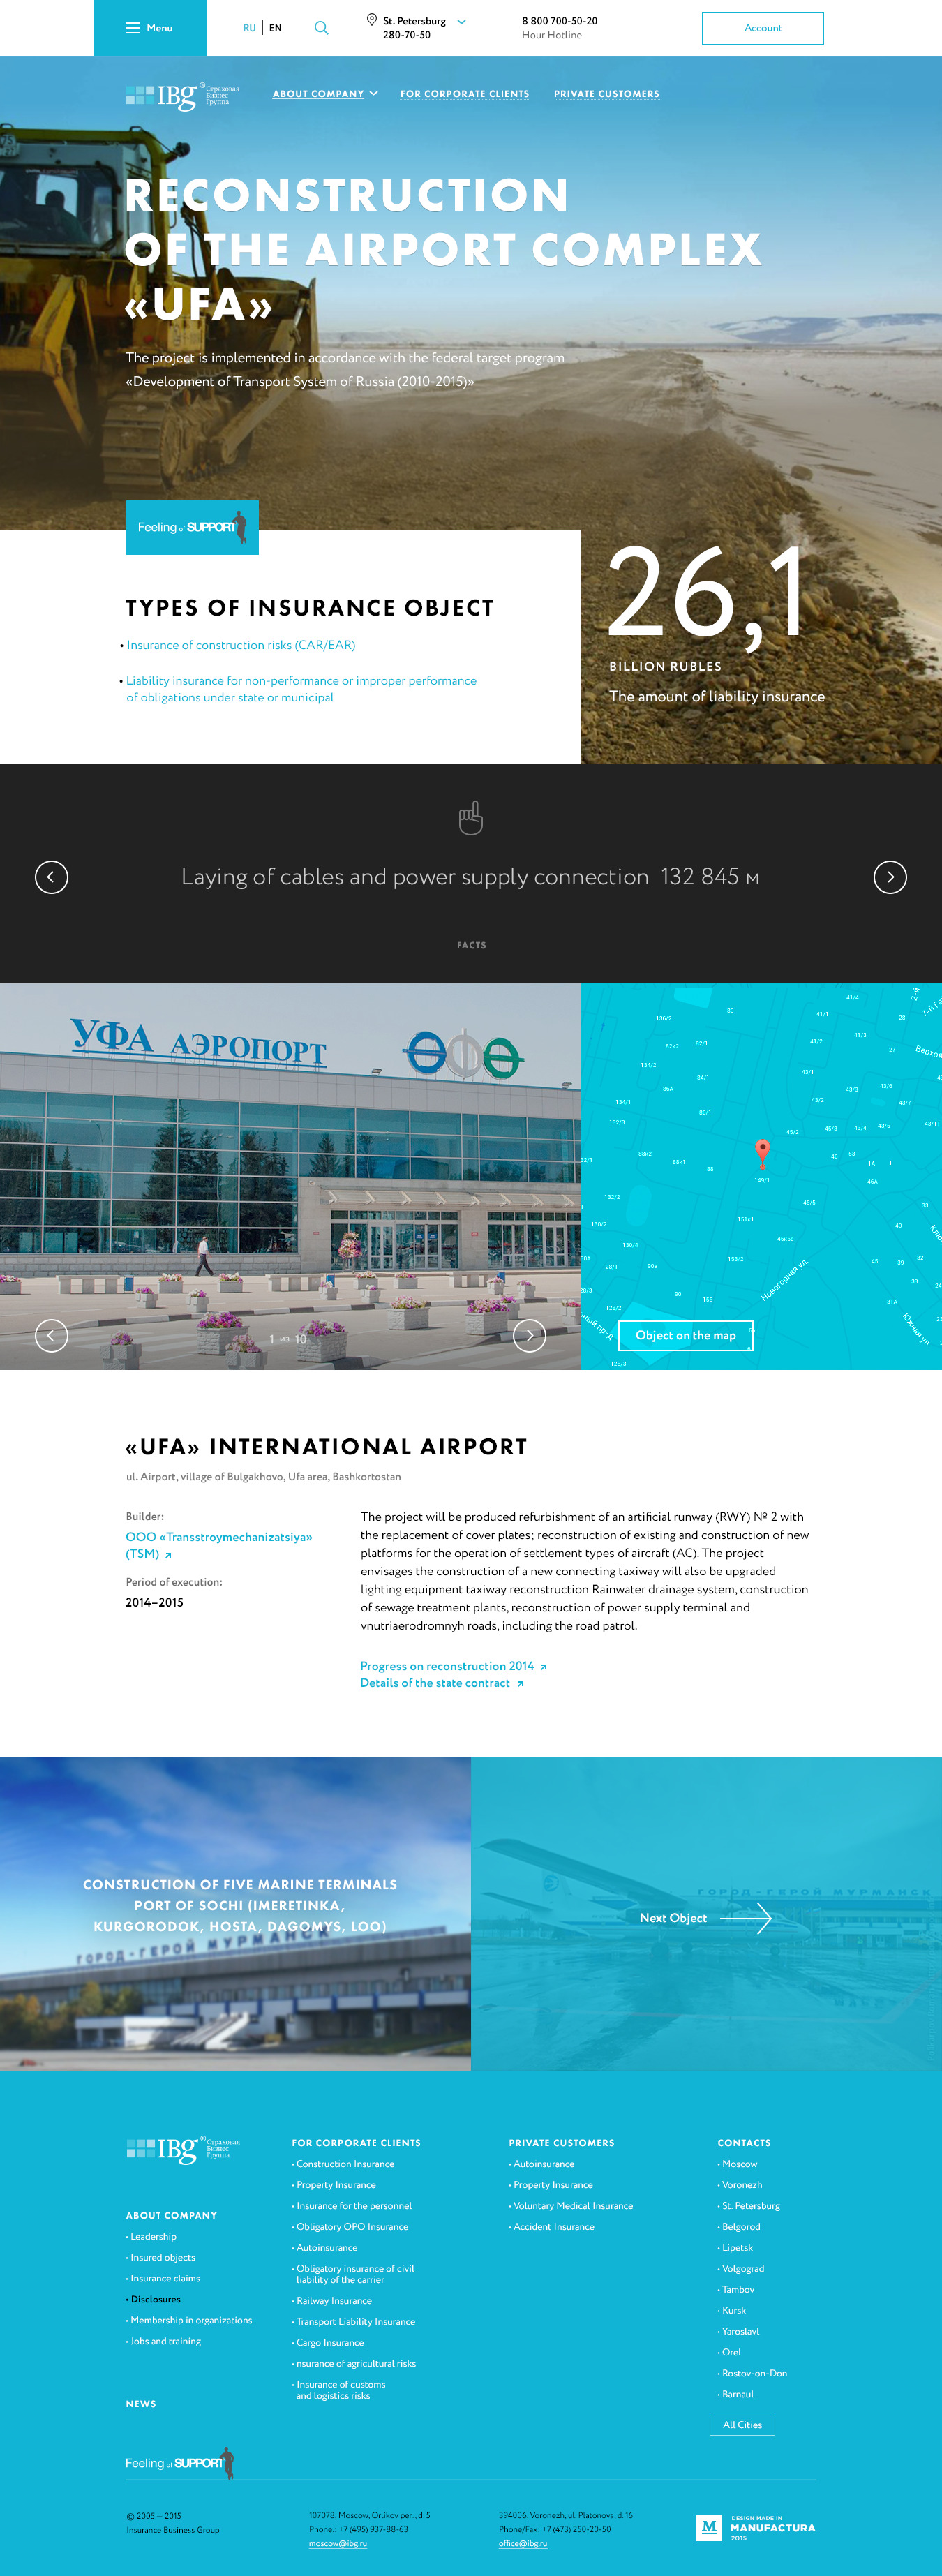 A sample object page (Ufa airport complex)